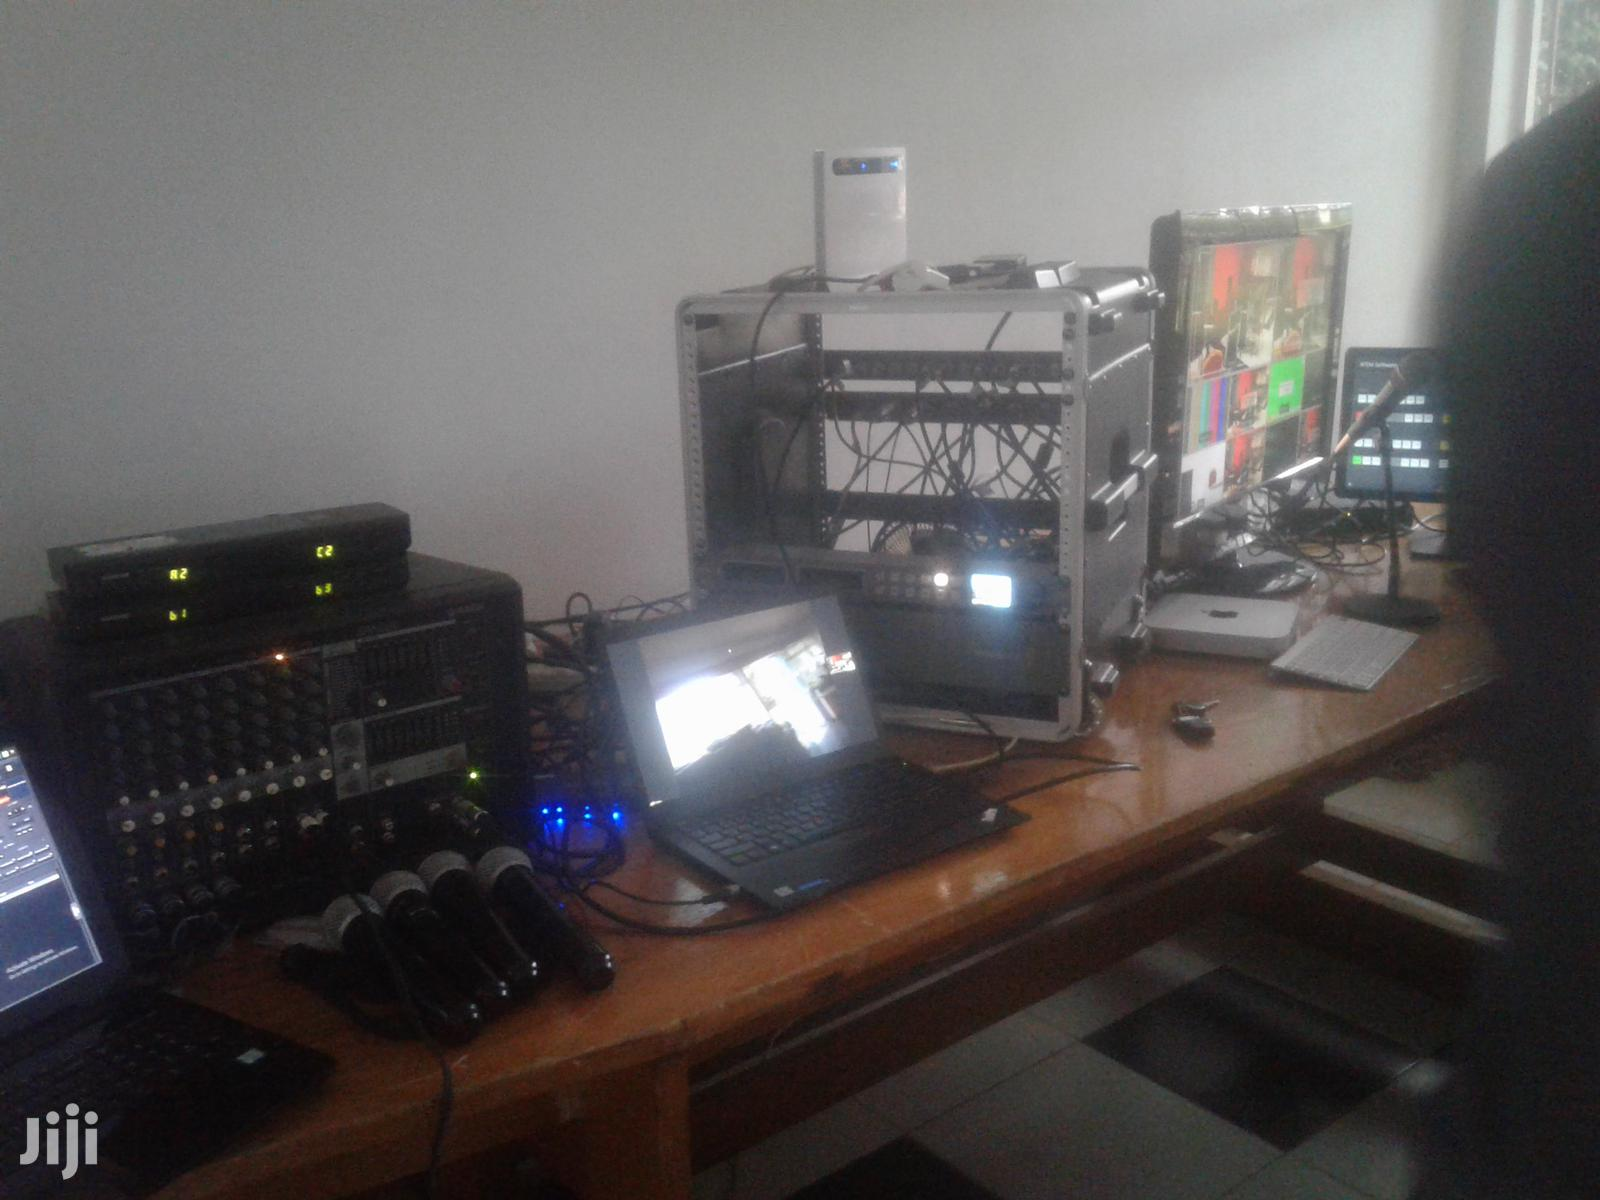 55 Inches TV & Pa System For Hire. | DJ & Entertainment Services for sale in Nairobi Central, Nairobi, Kenya